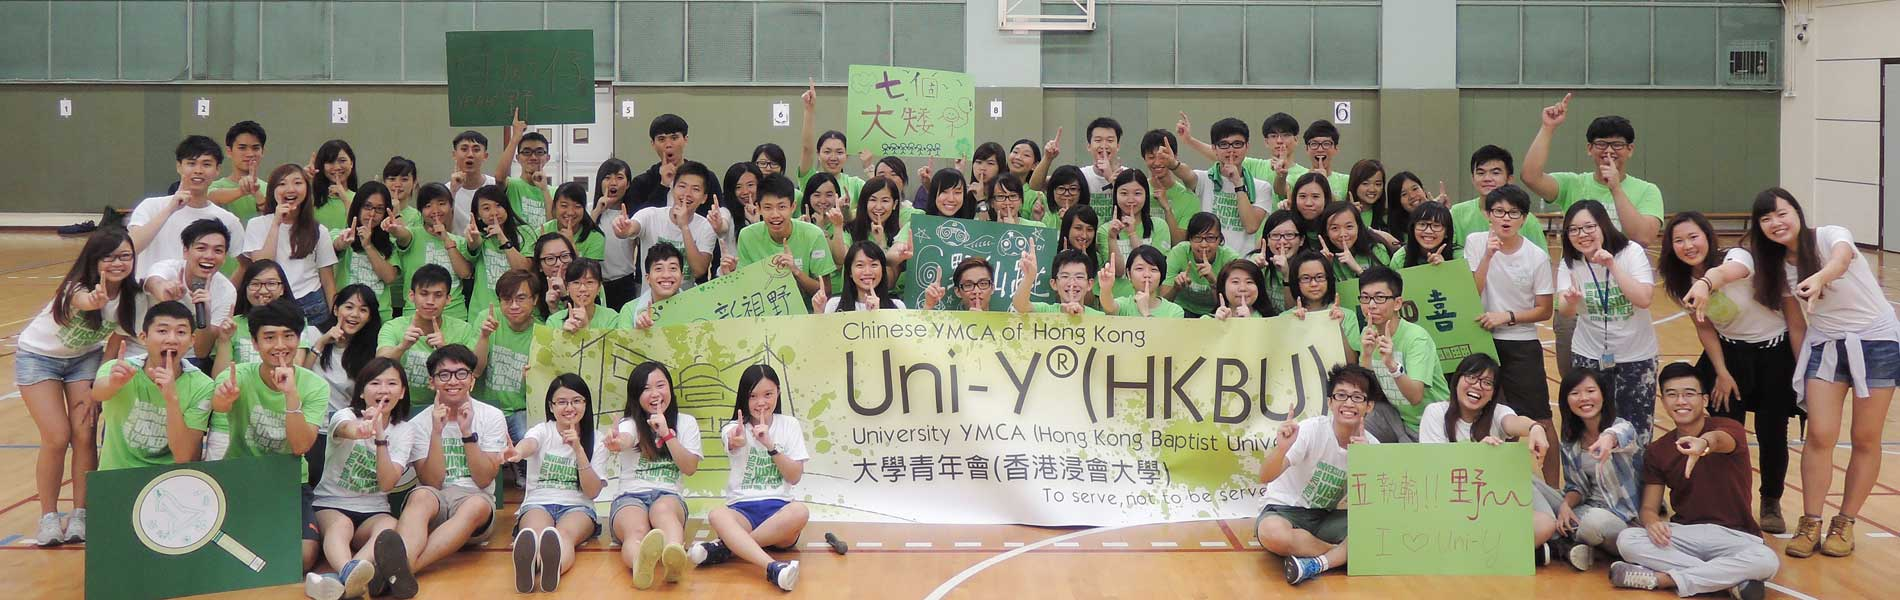 University YMCA - Hong Kong Baptist University Photo